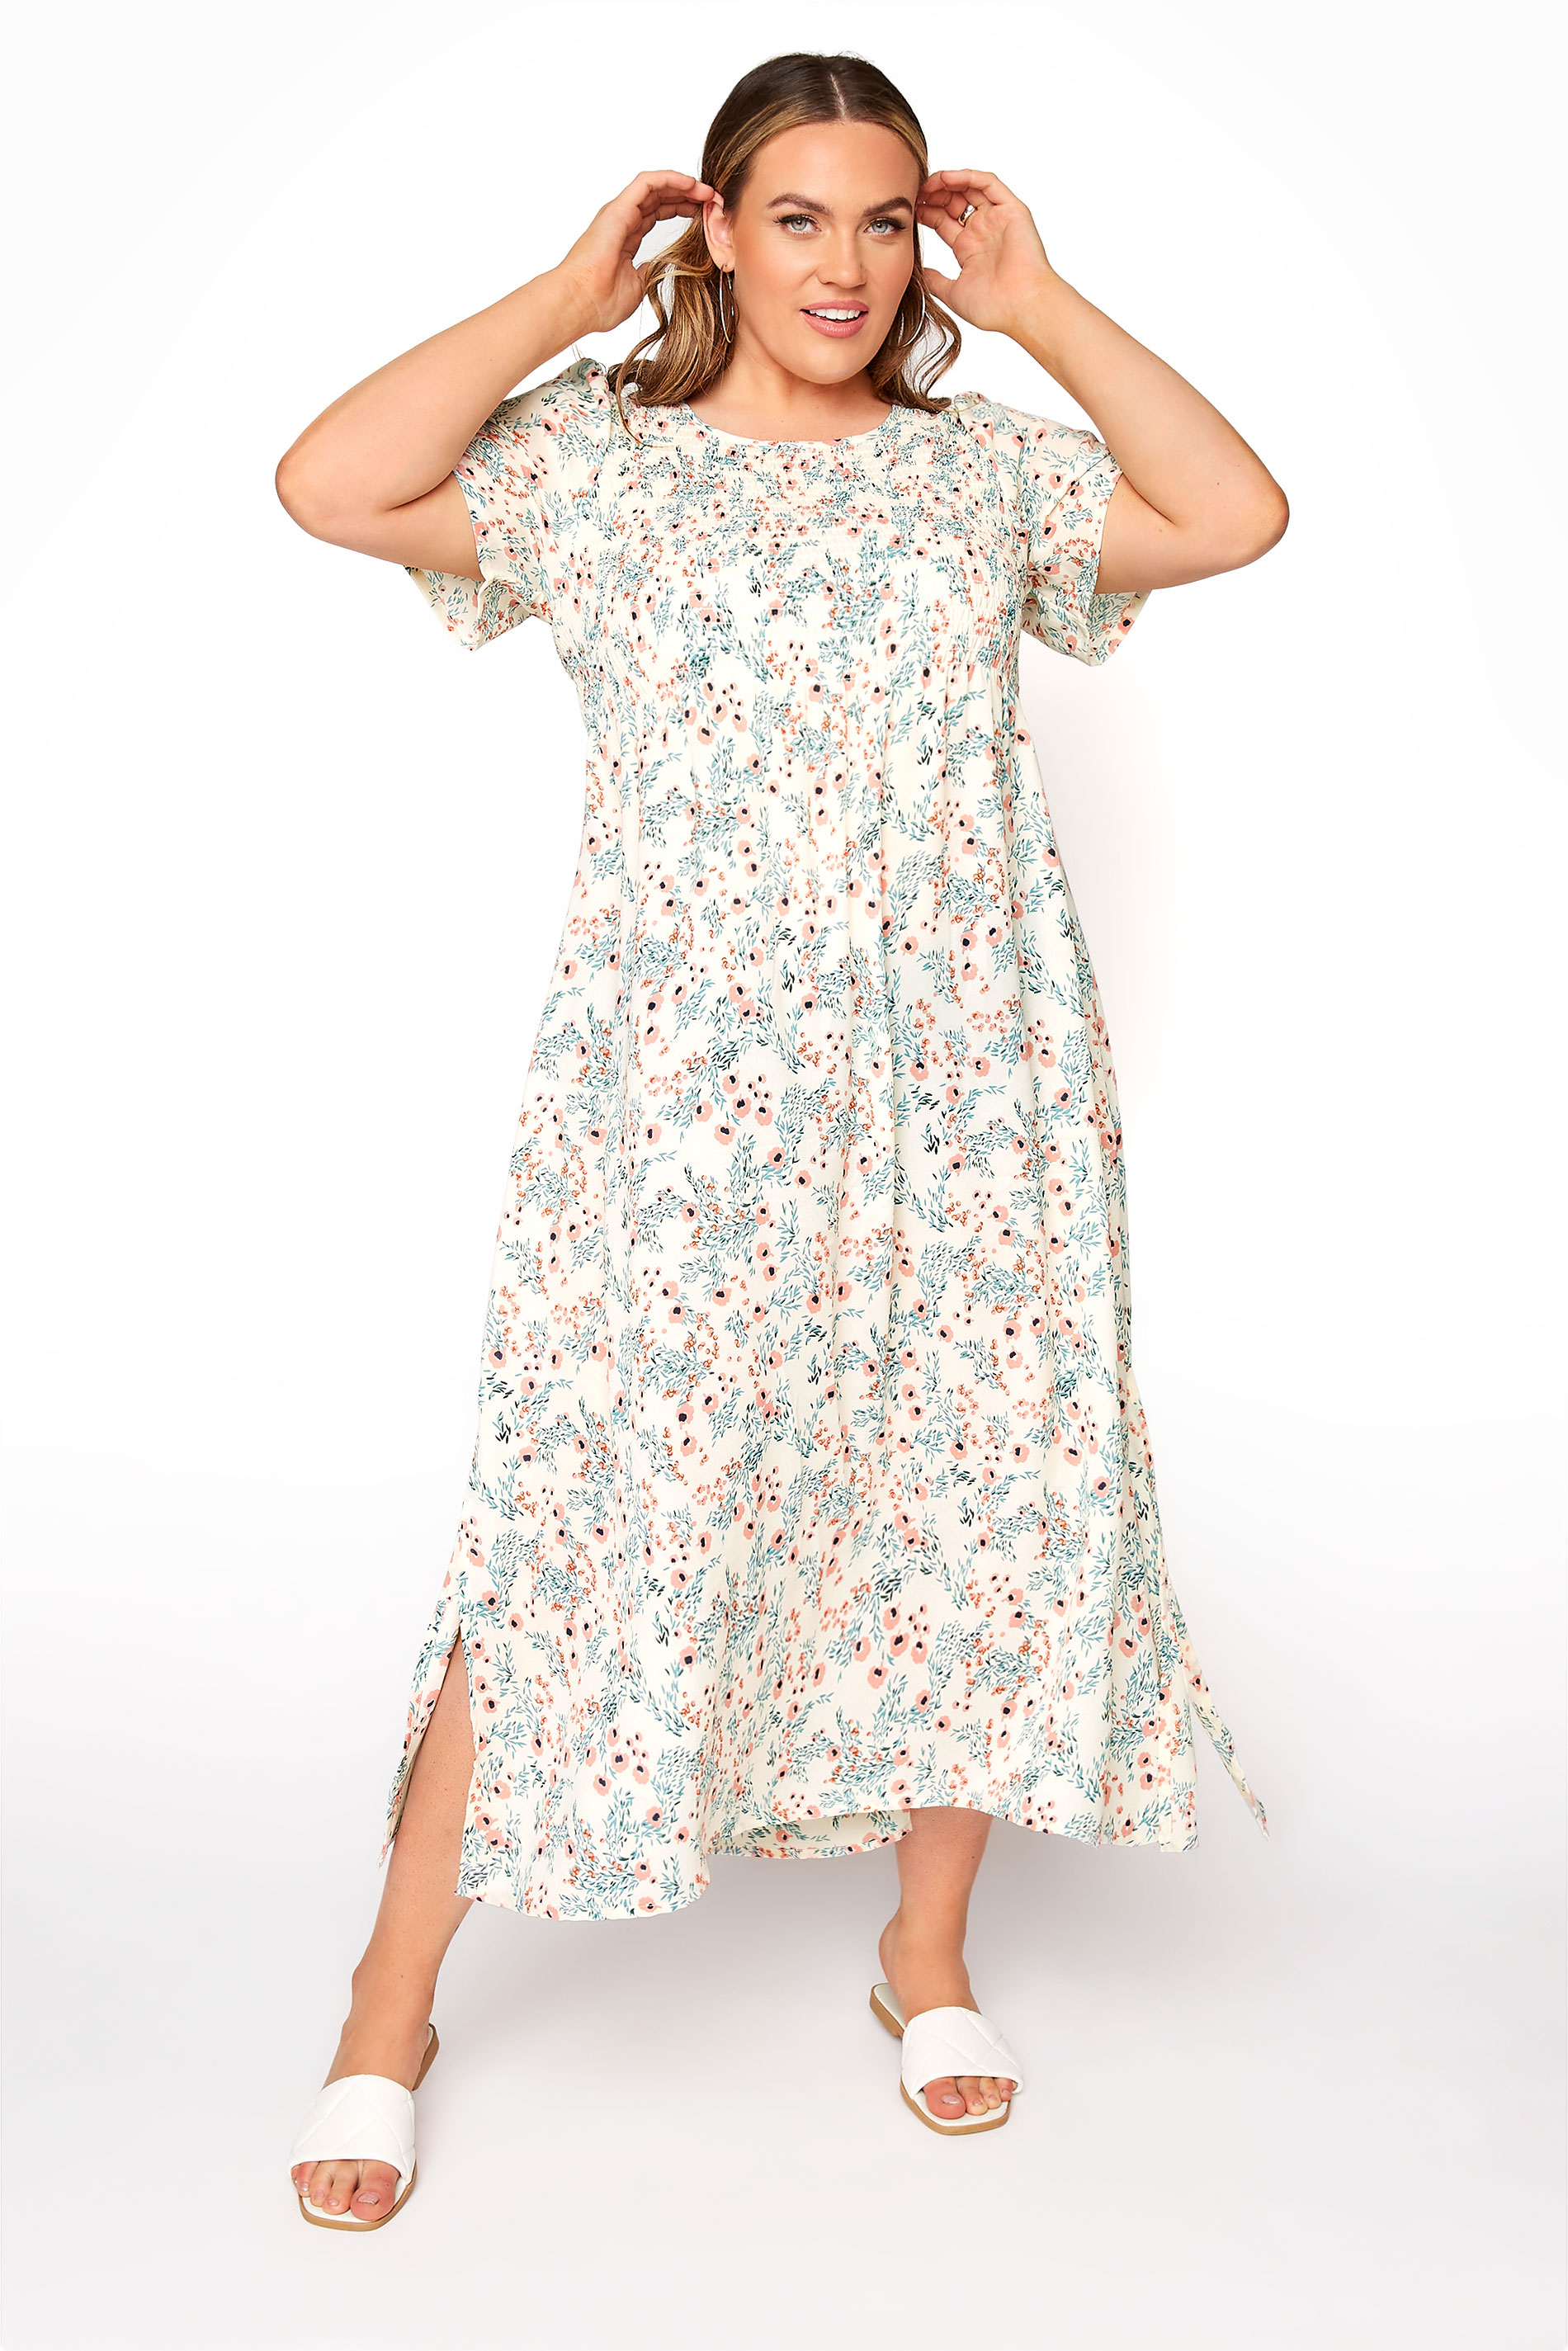 LIMITED COLLECTION White Floral Shirred Maxi Dress_A.jpg